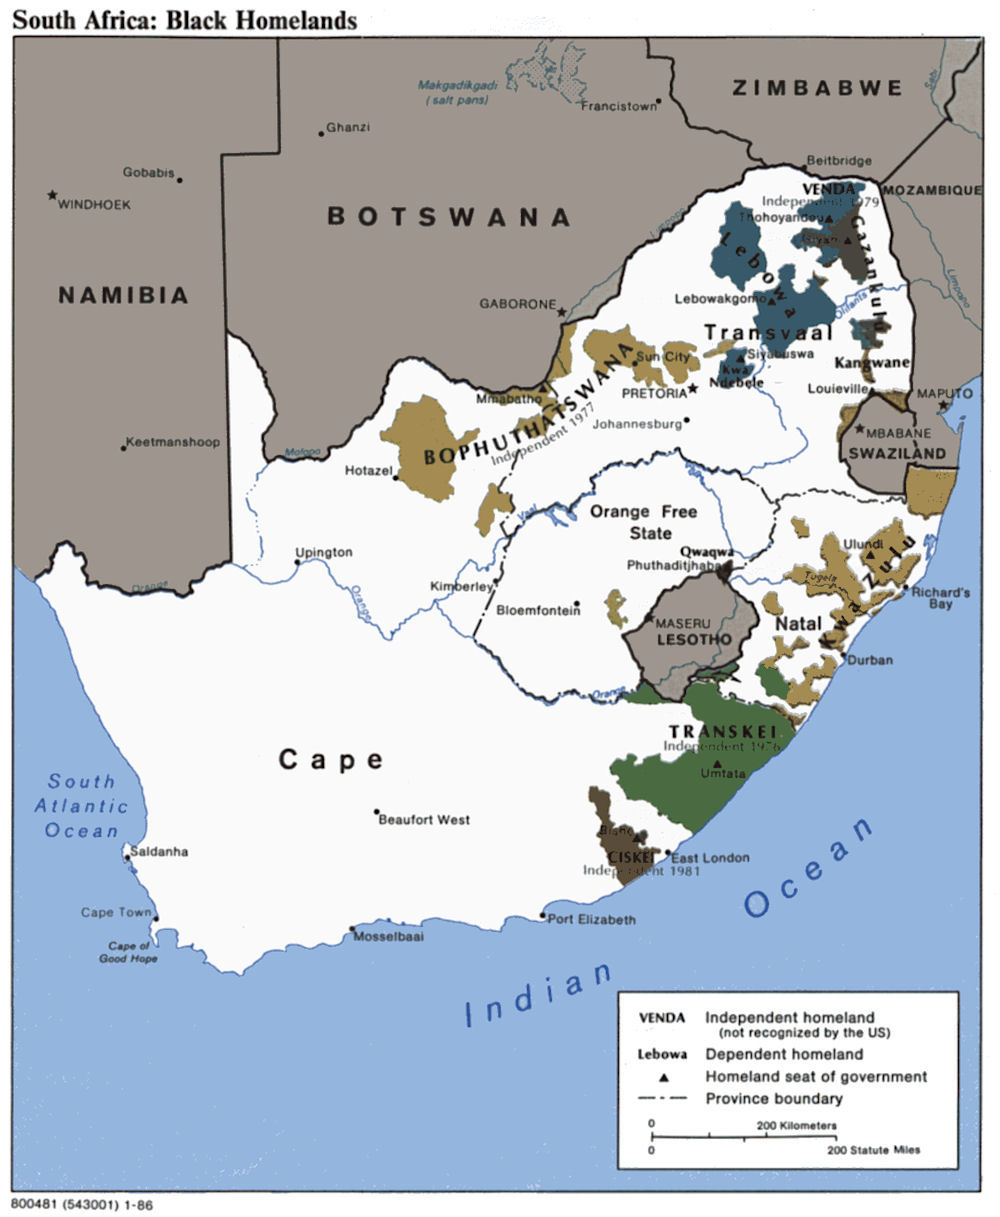 South African Native Plants: History Maps